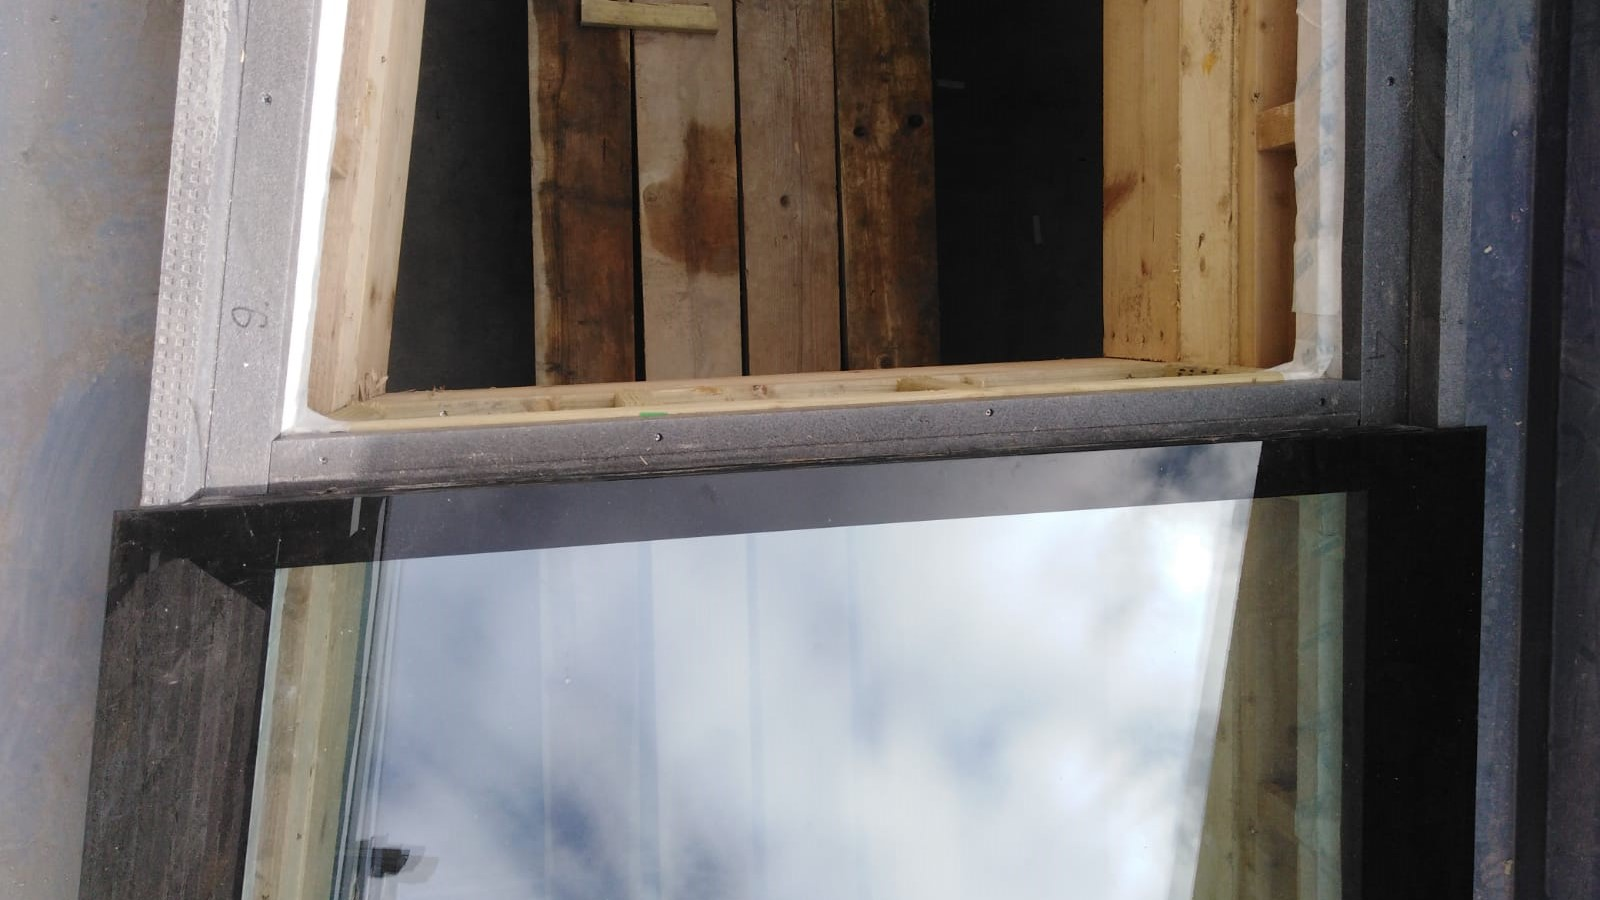 Triotherm+ to support and insulate the upstand for a roof light